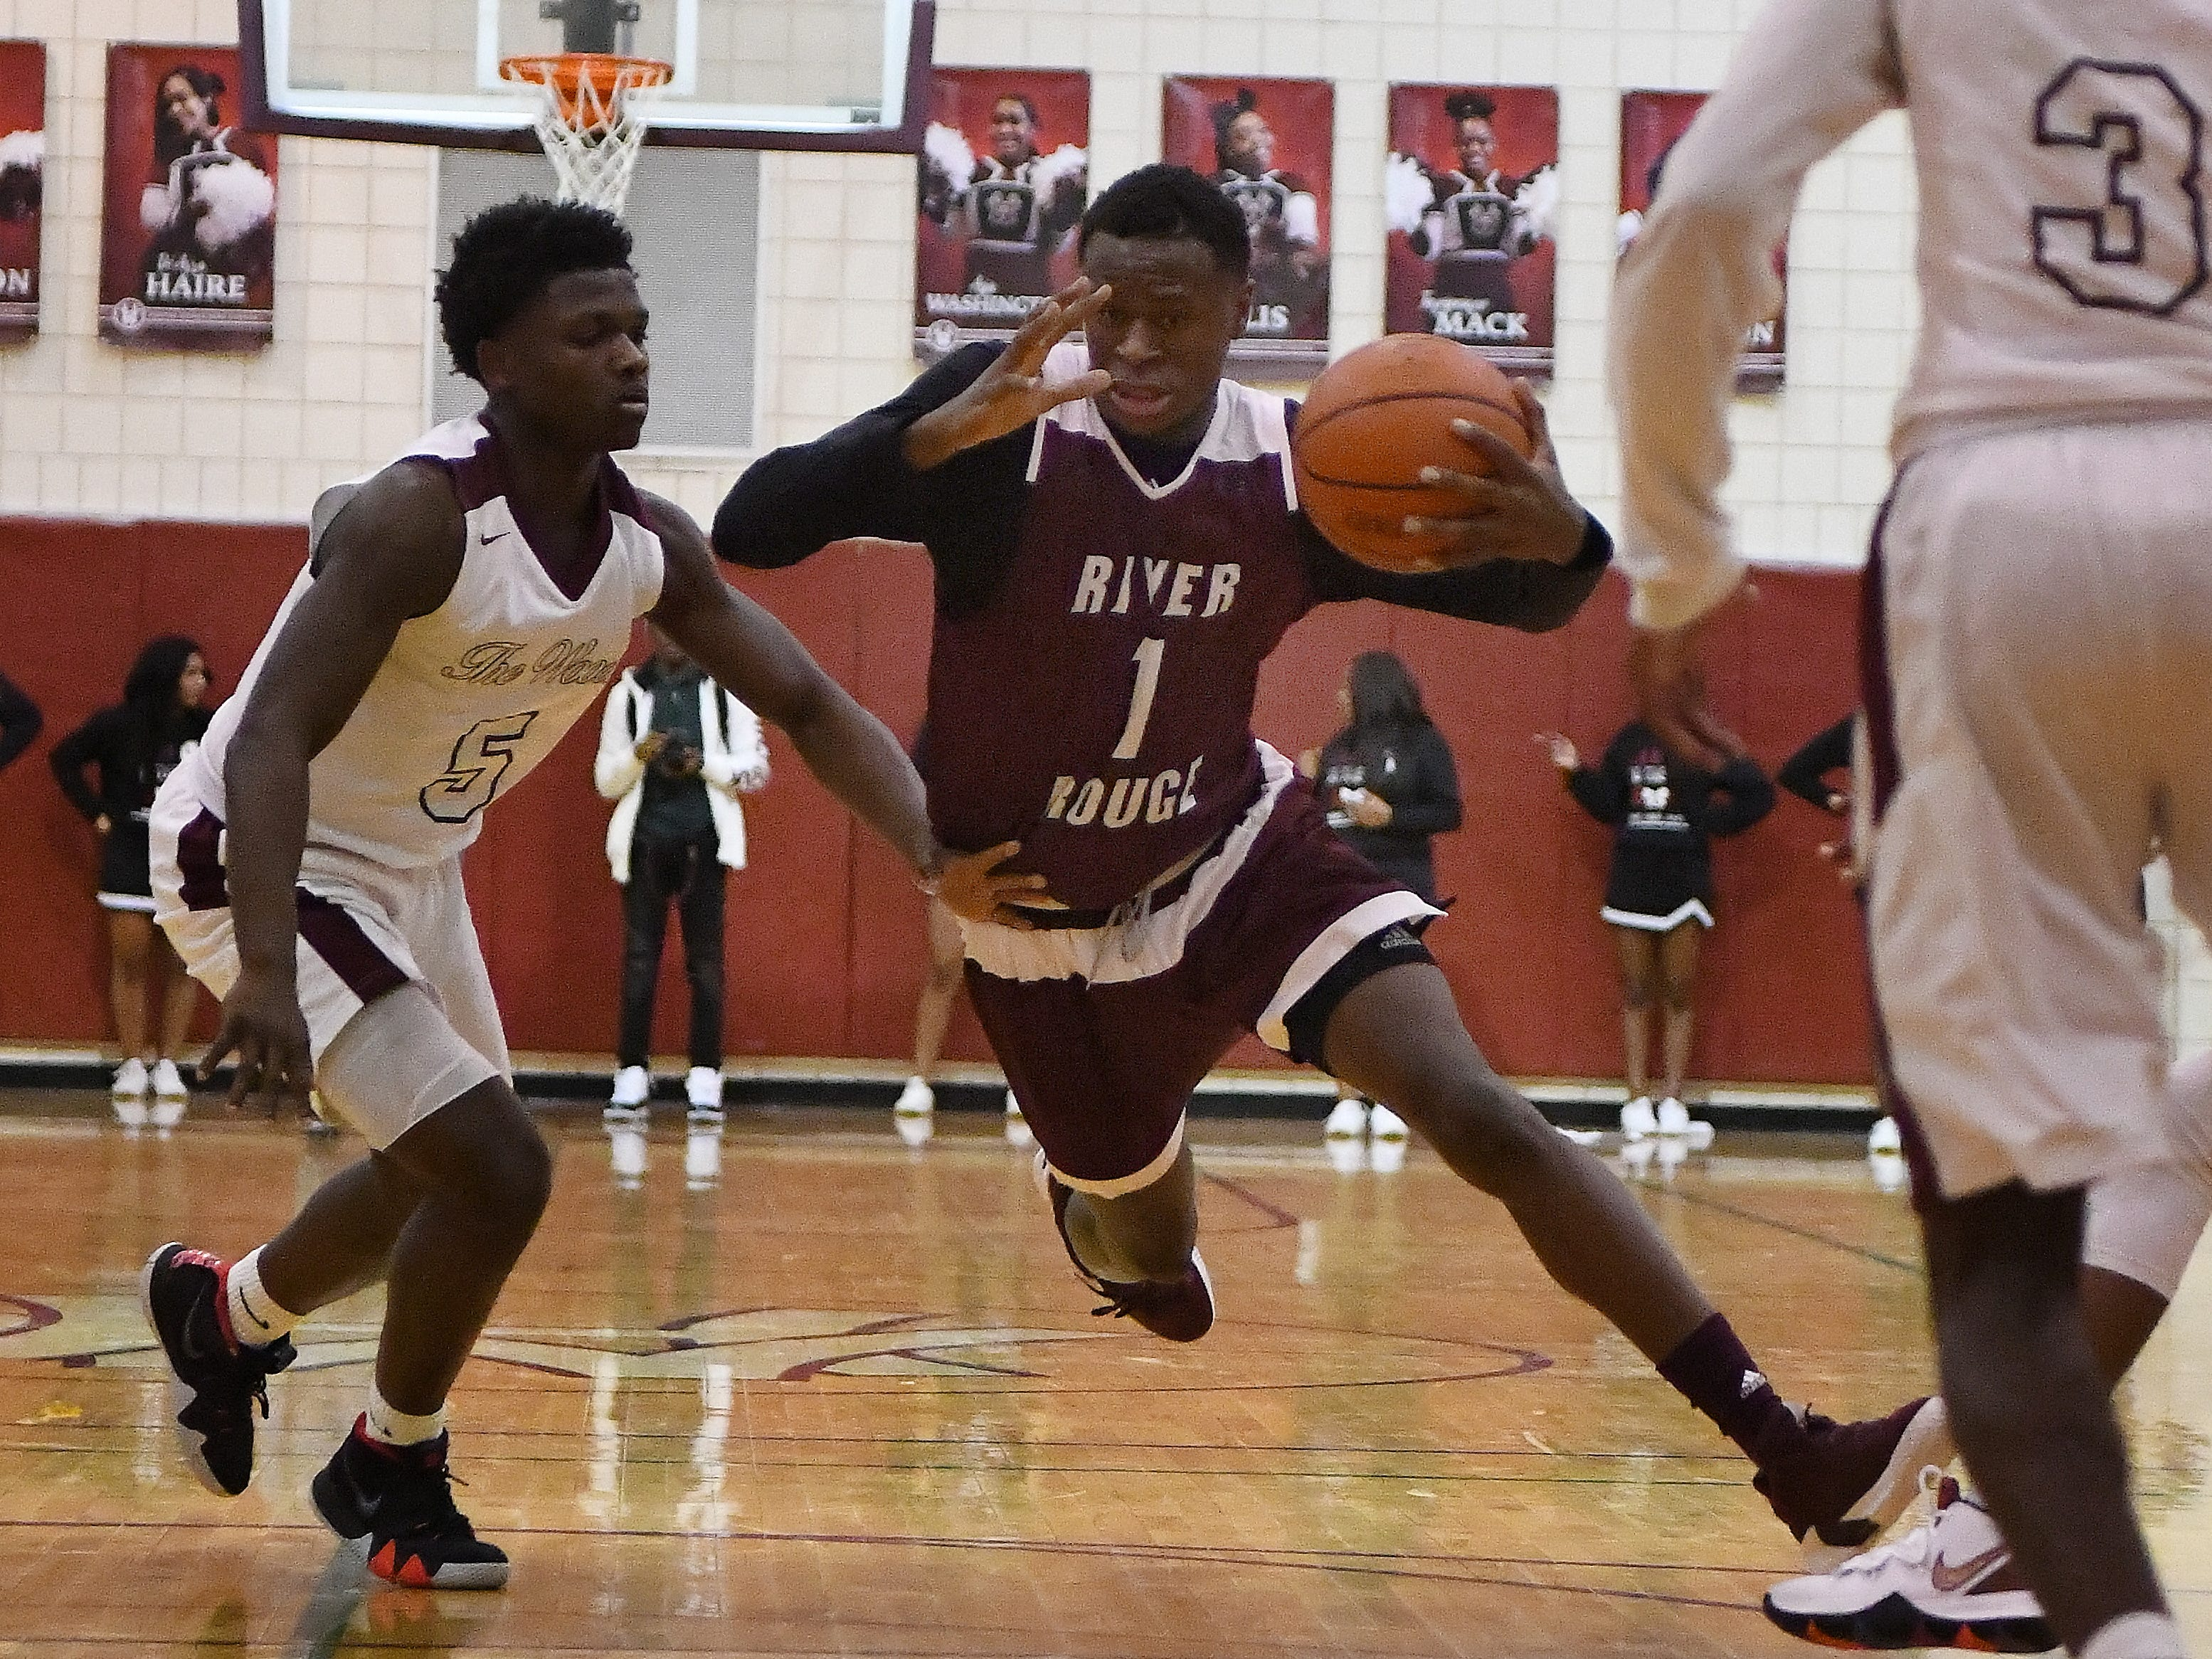 River Rouge's Donavon Freeman drives to the basket in the second half of the 60-45 victory over Harper Woods in Harper Woods, Michigan on February 8, 2019.